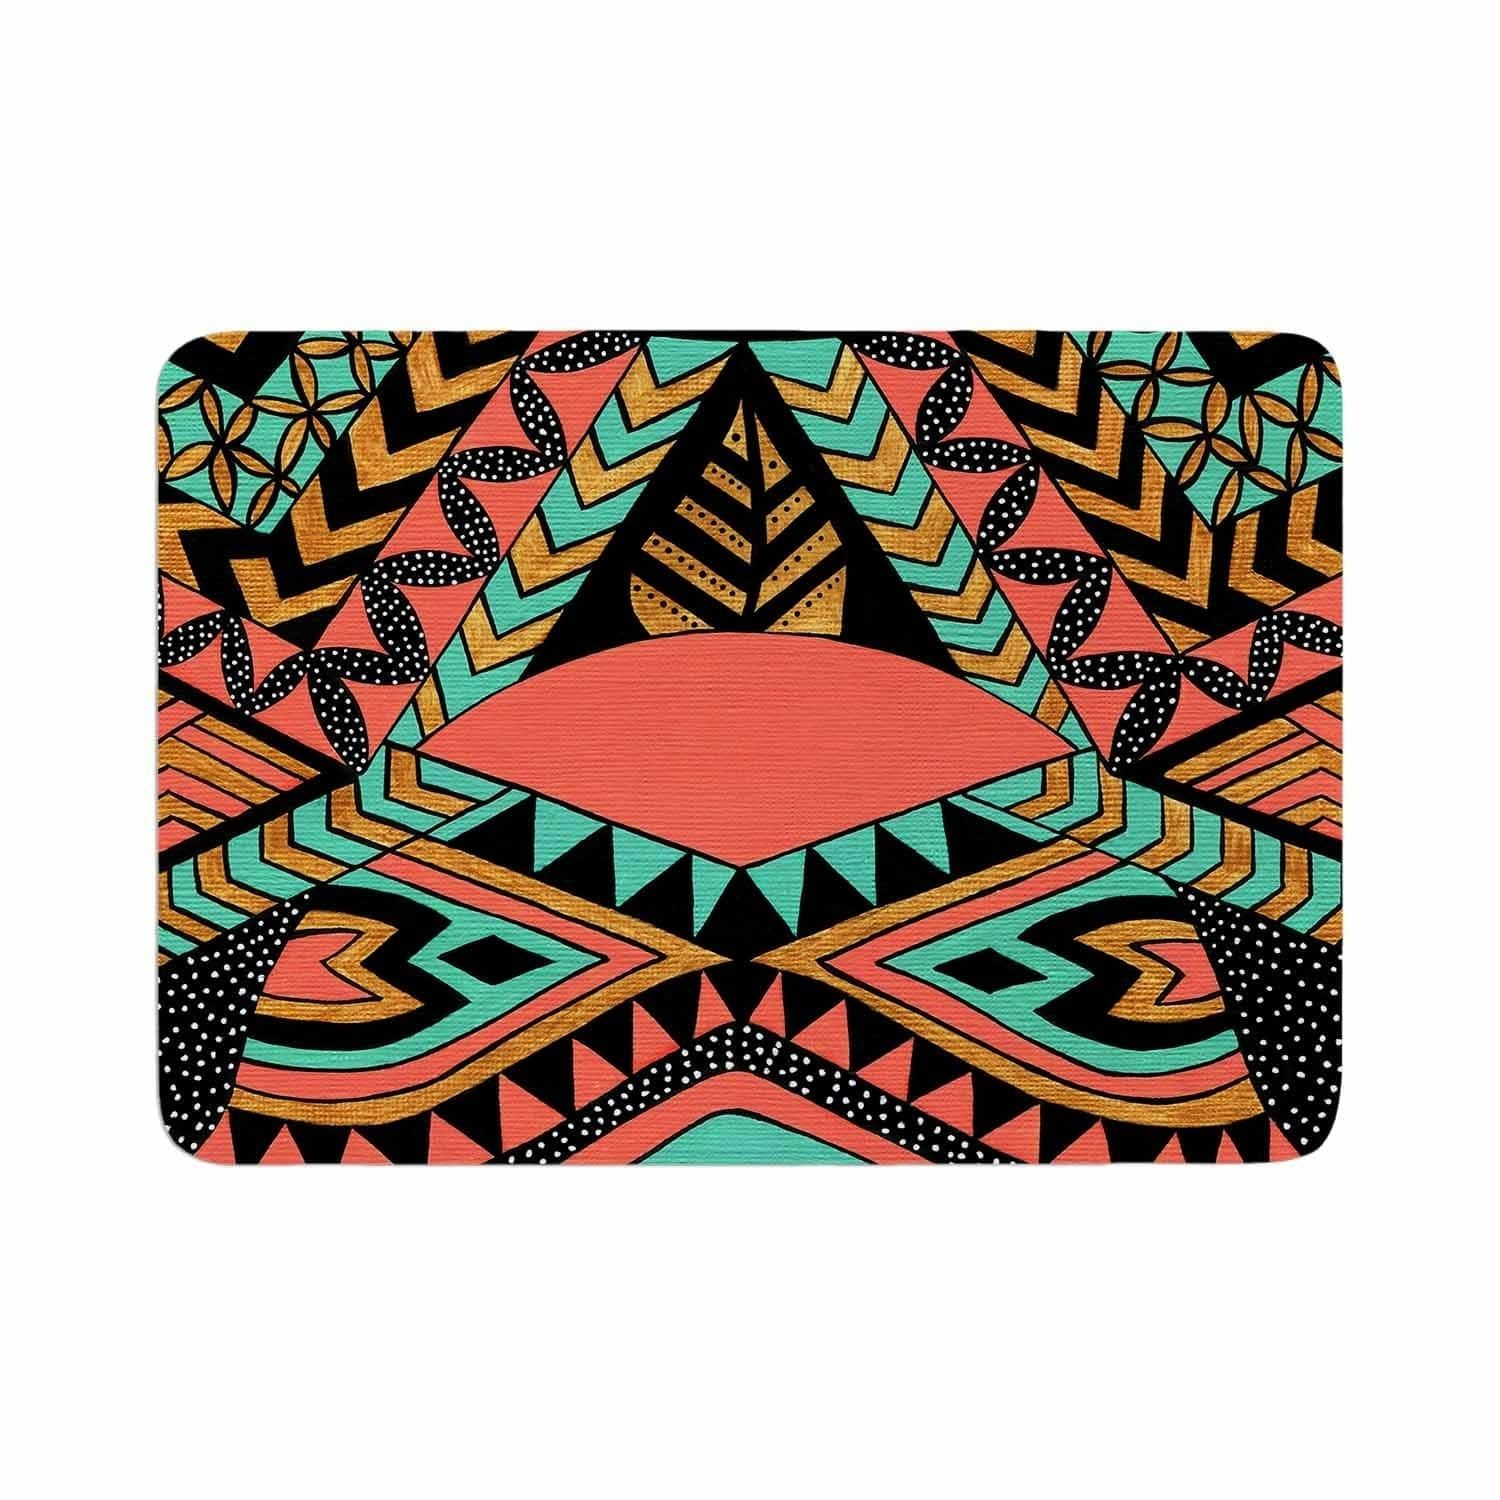 Pom Graphic Design Perunative Memory Foam Bath Mat Orange Kess